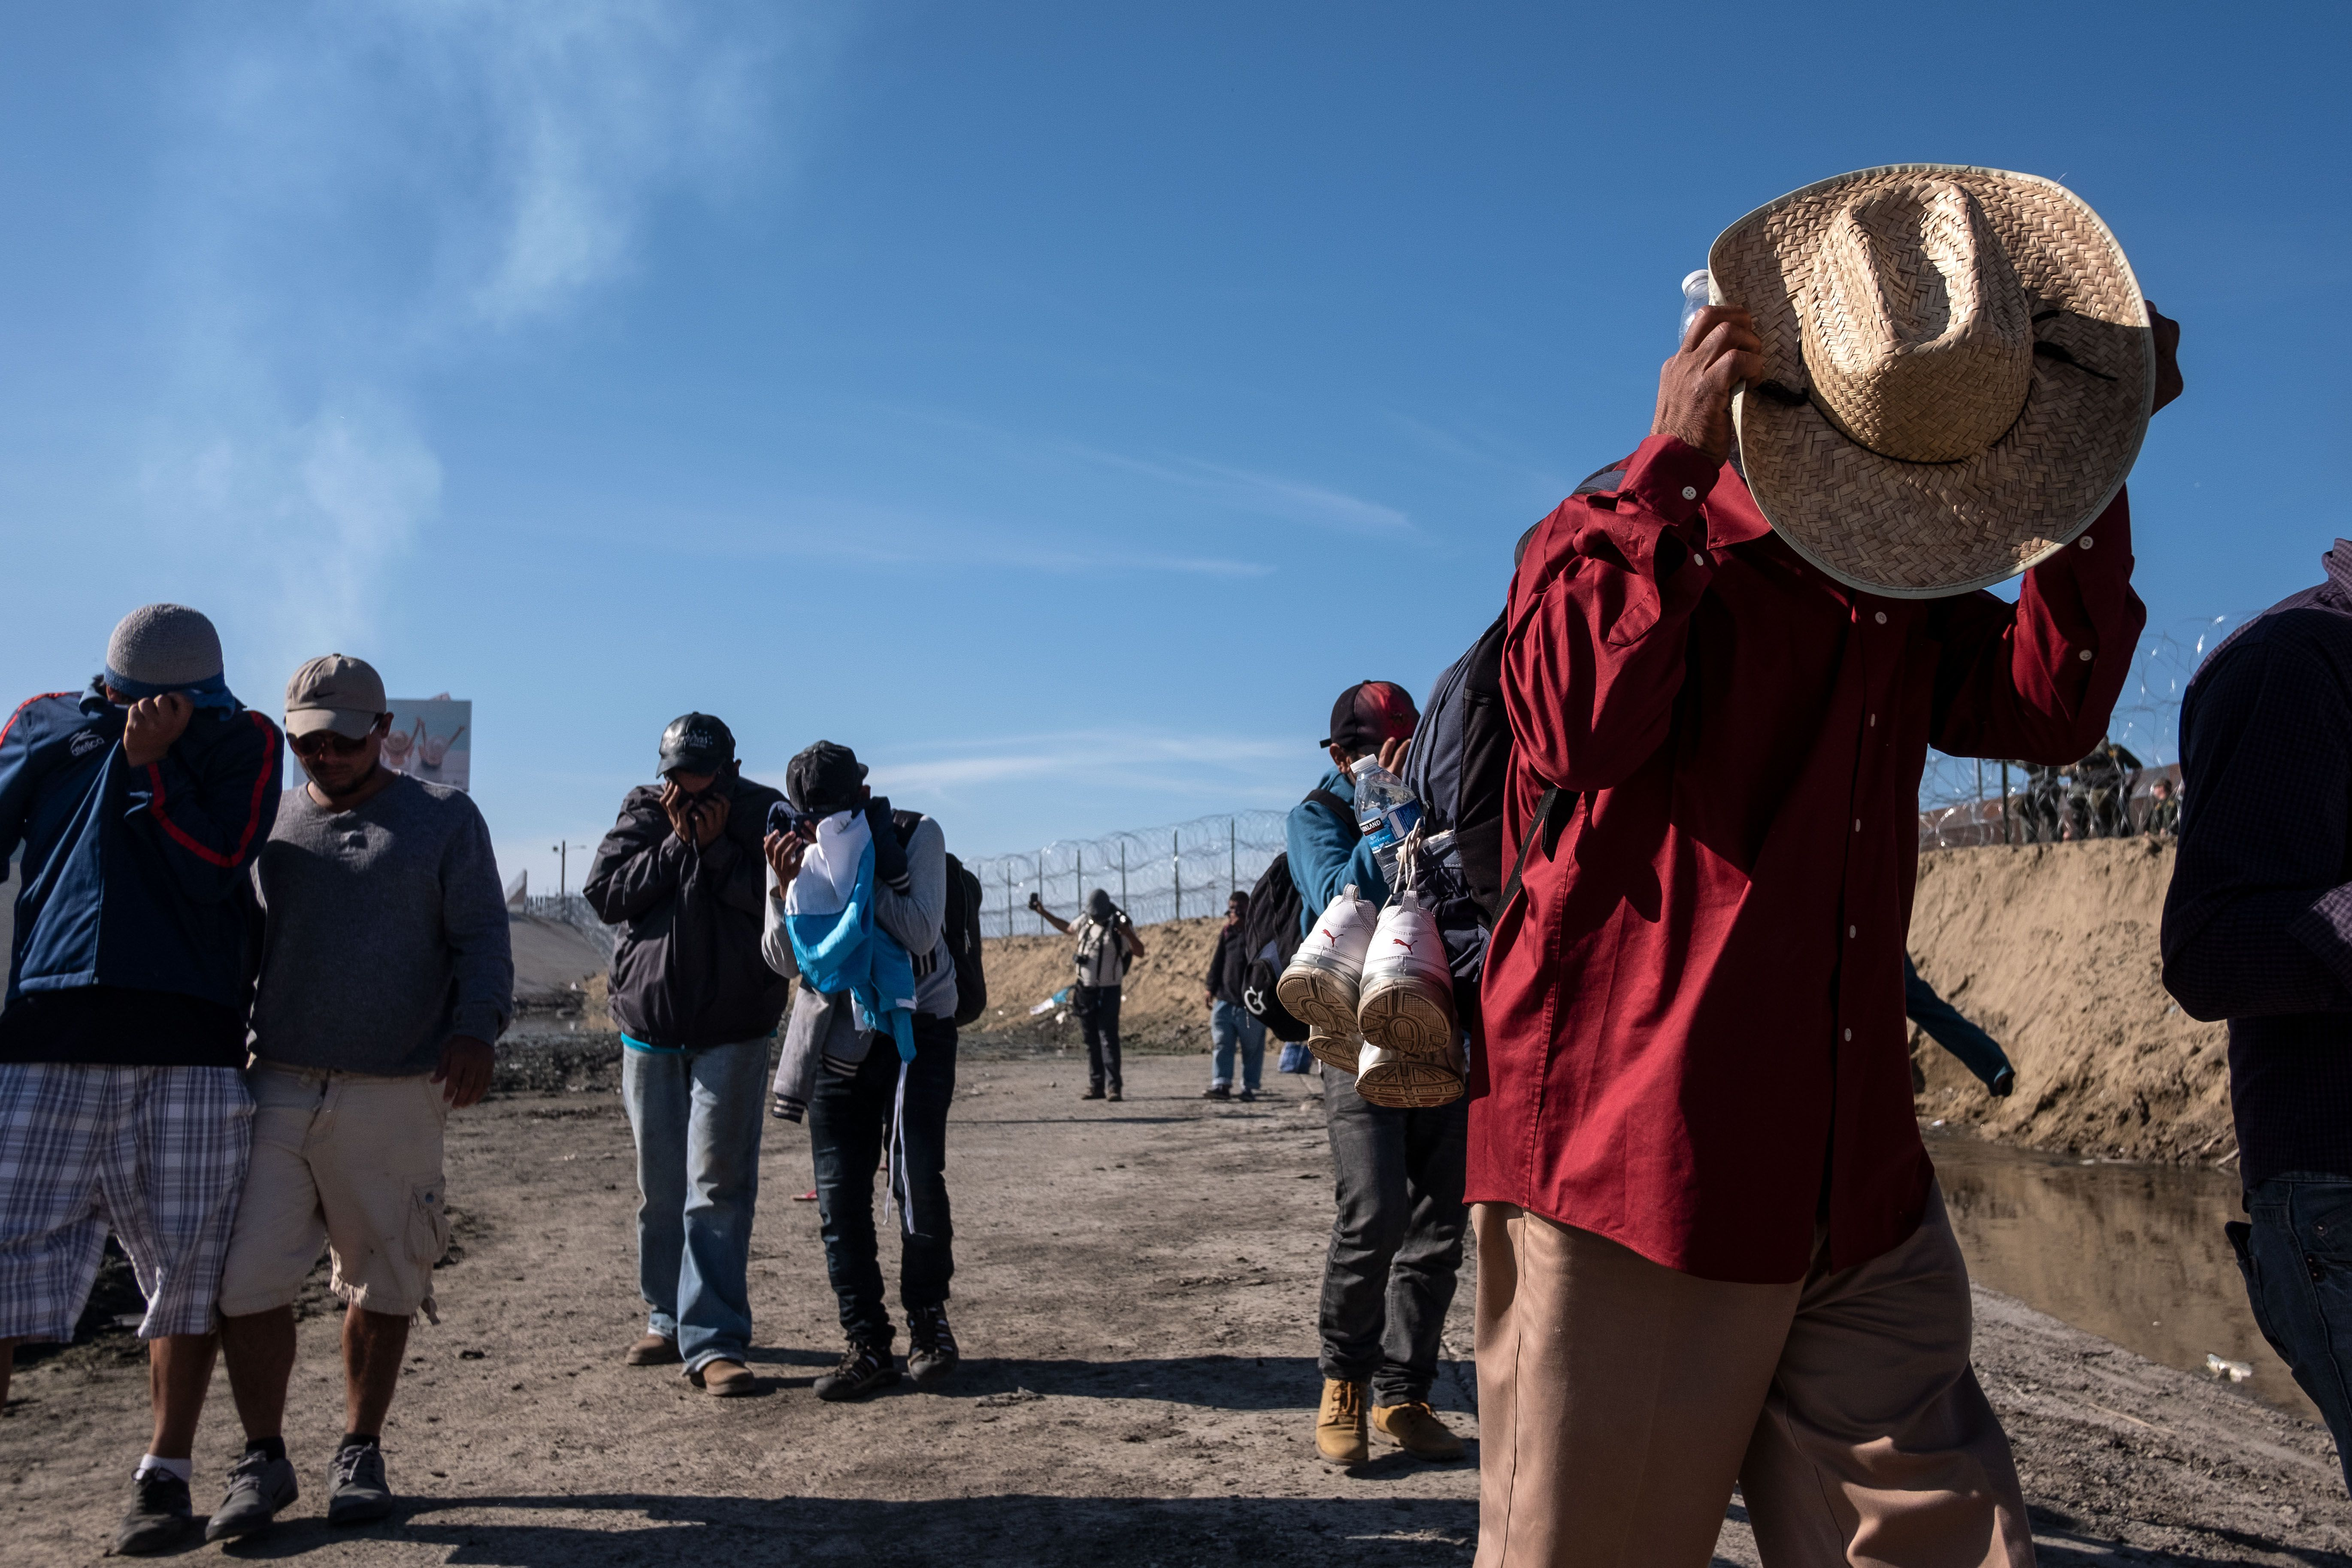 Migrants fleeing from tear gas and covering their heads and faces.